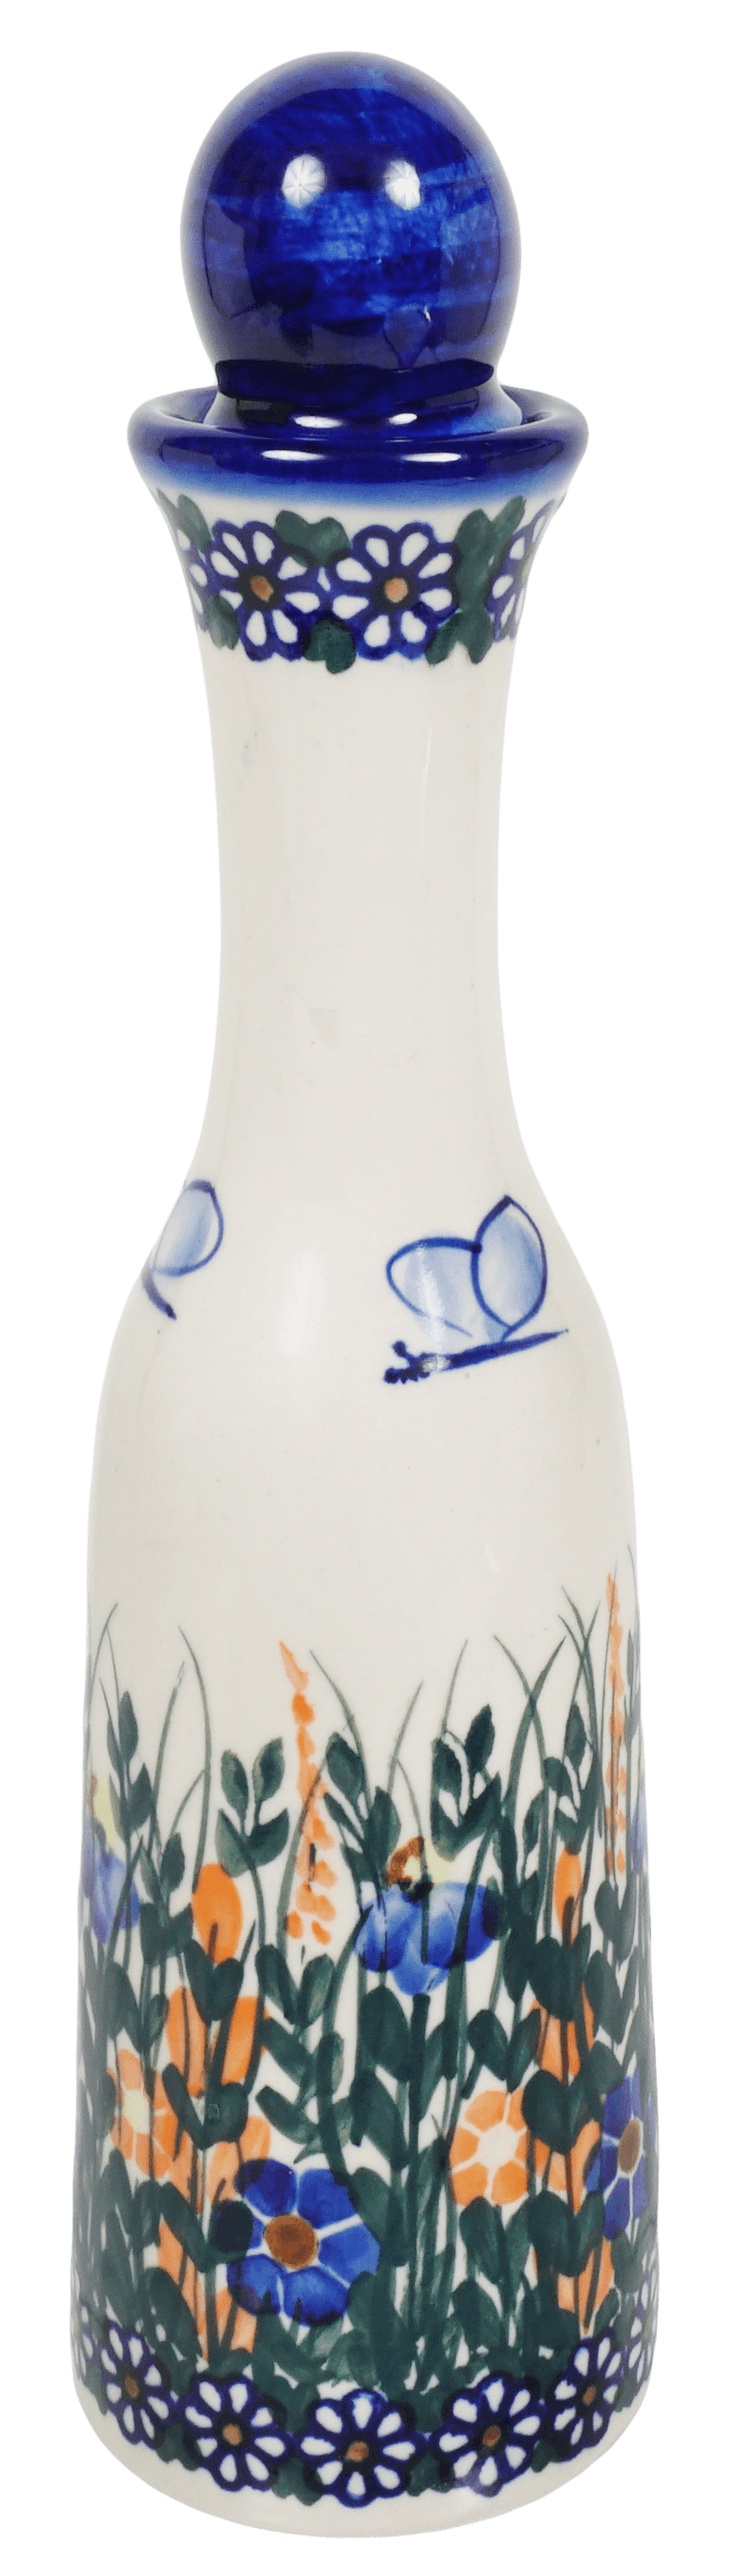 13.5 oz. Bottle with Cork (PP2)